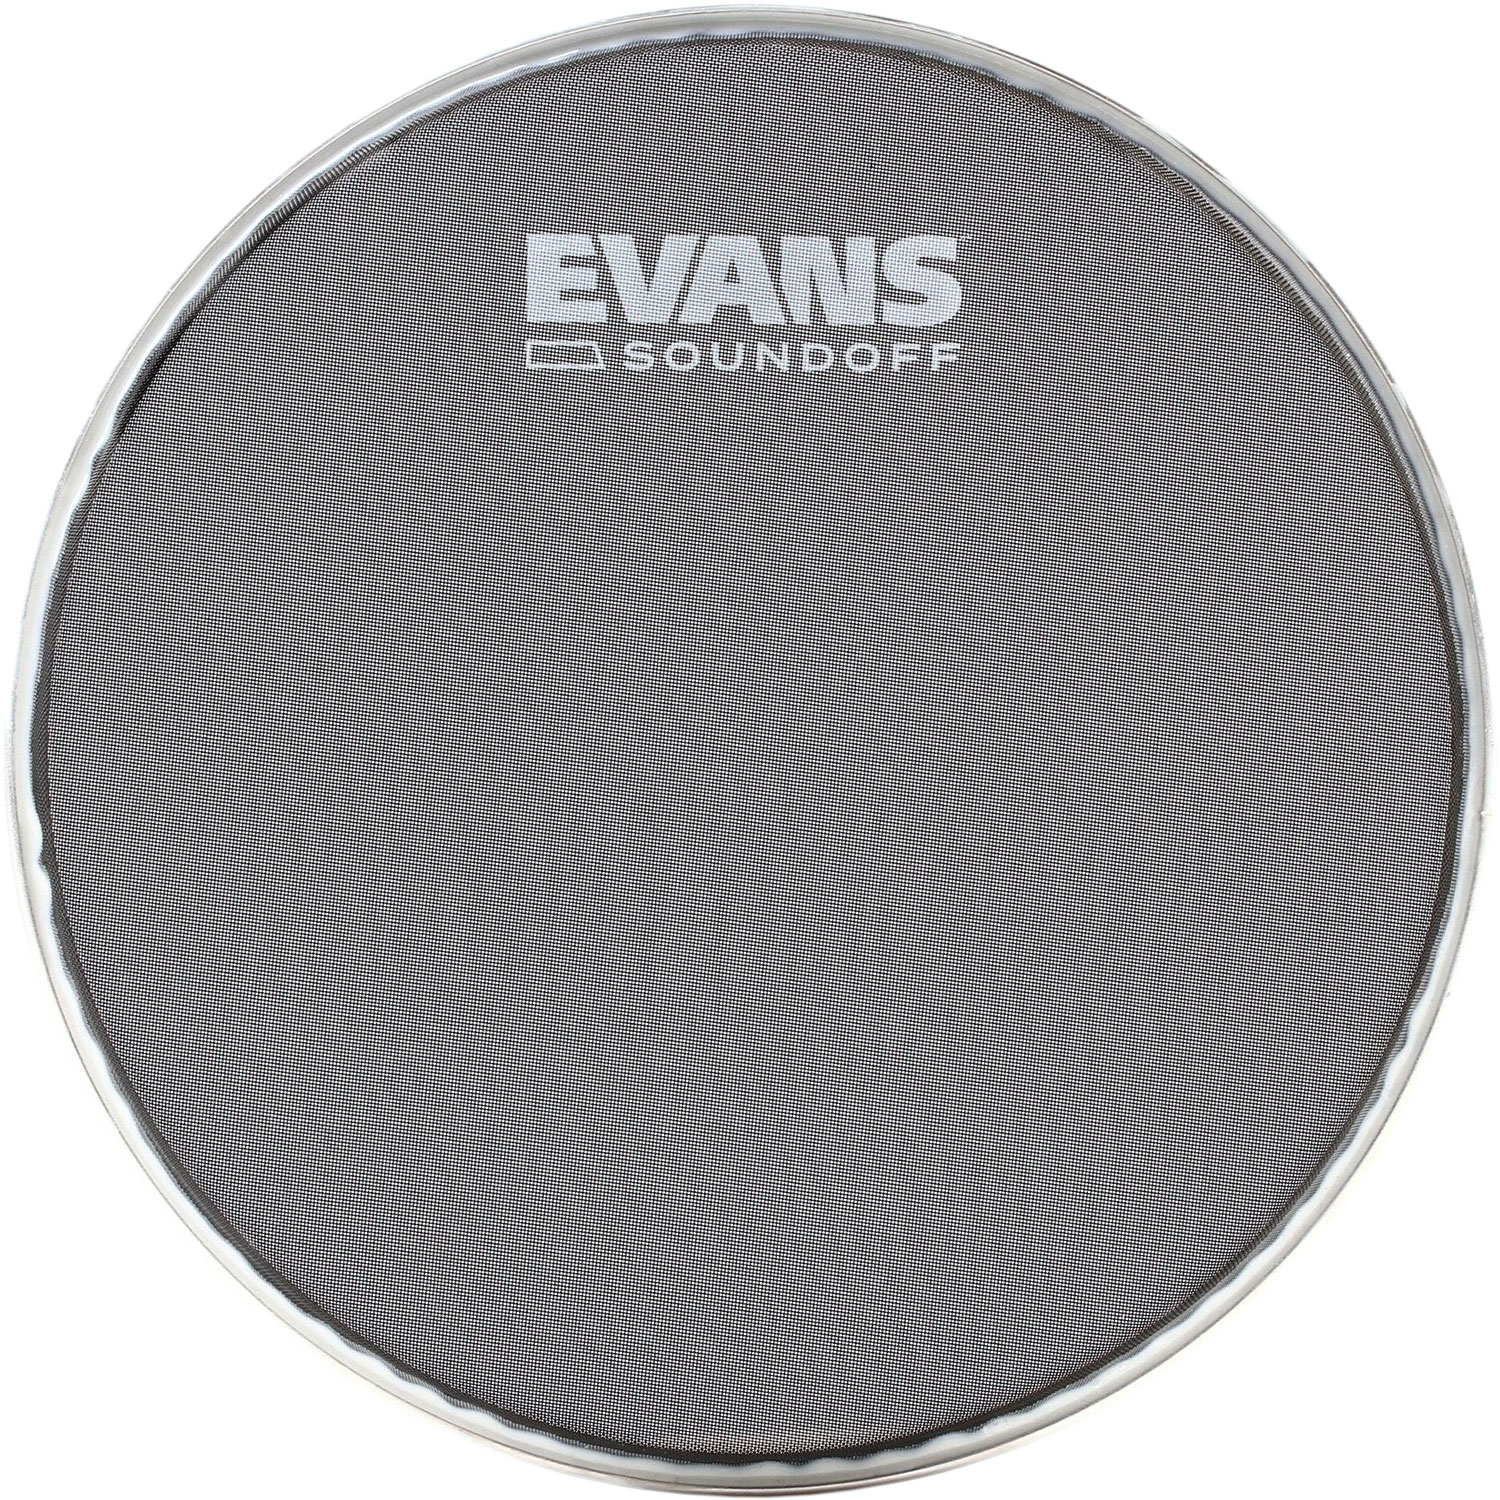 "Evans 16"" SoundOff Mesh Drum Head"